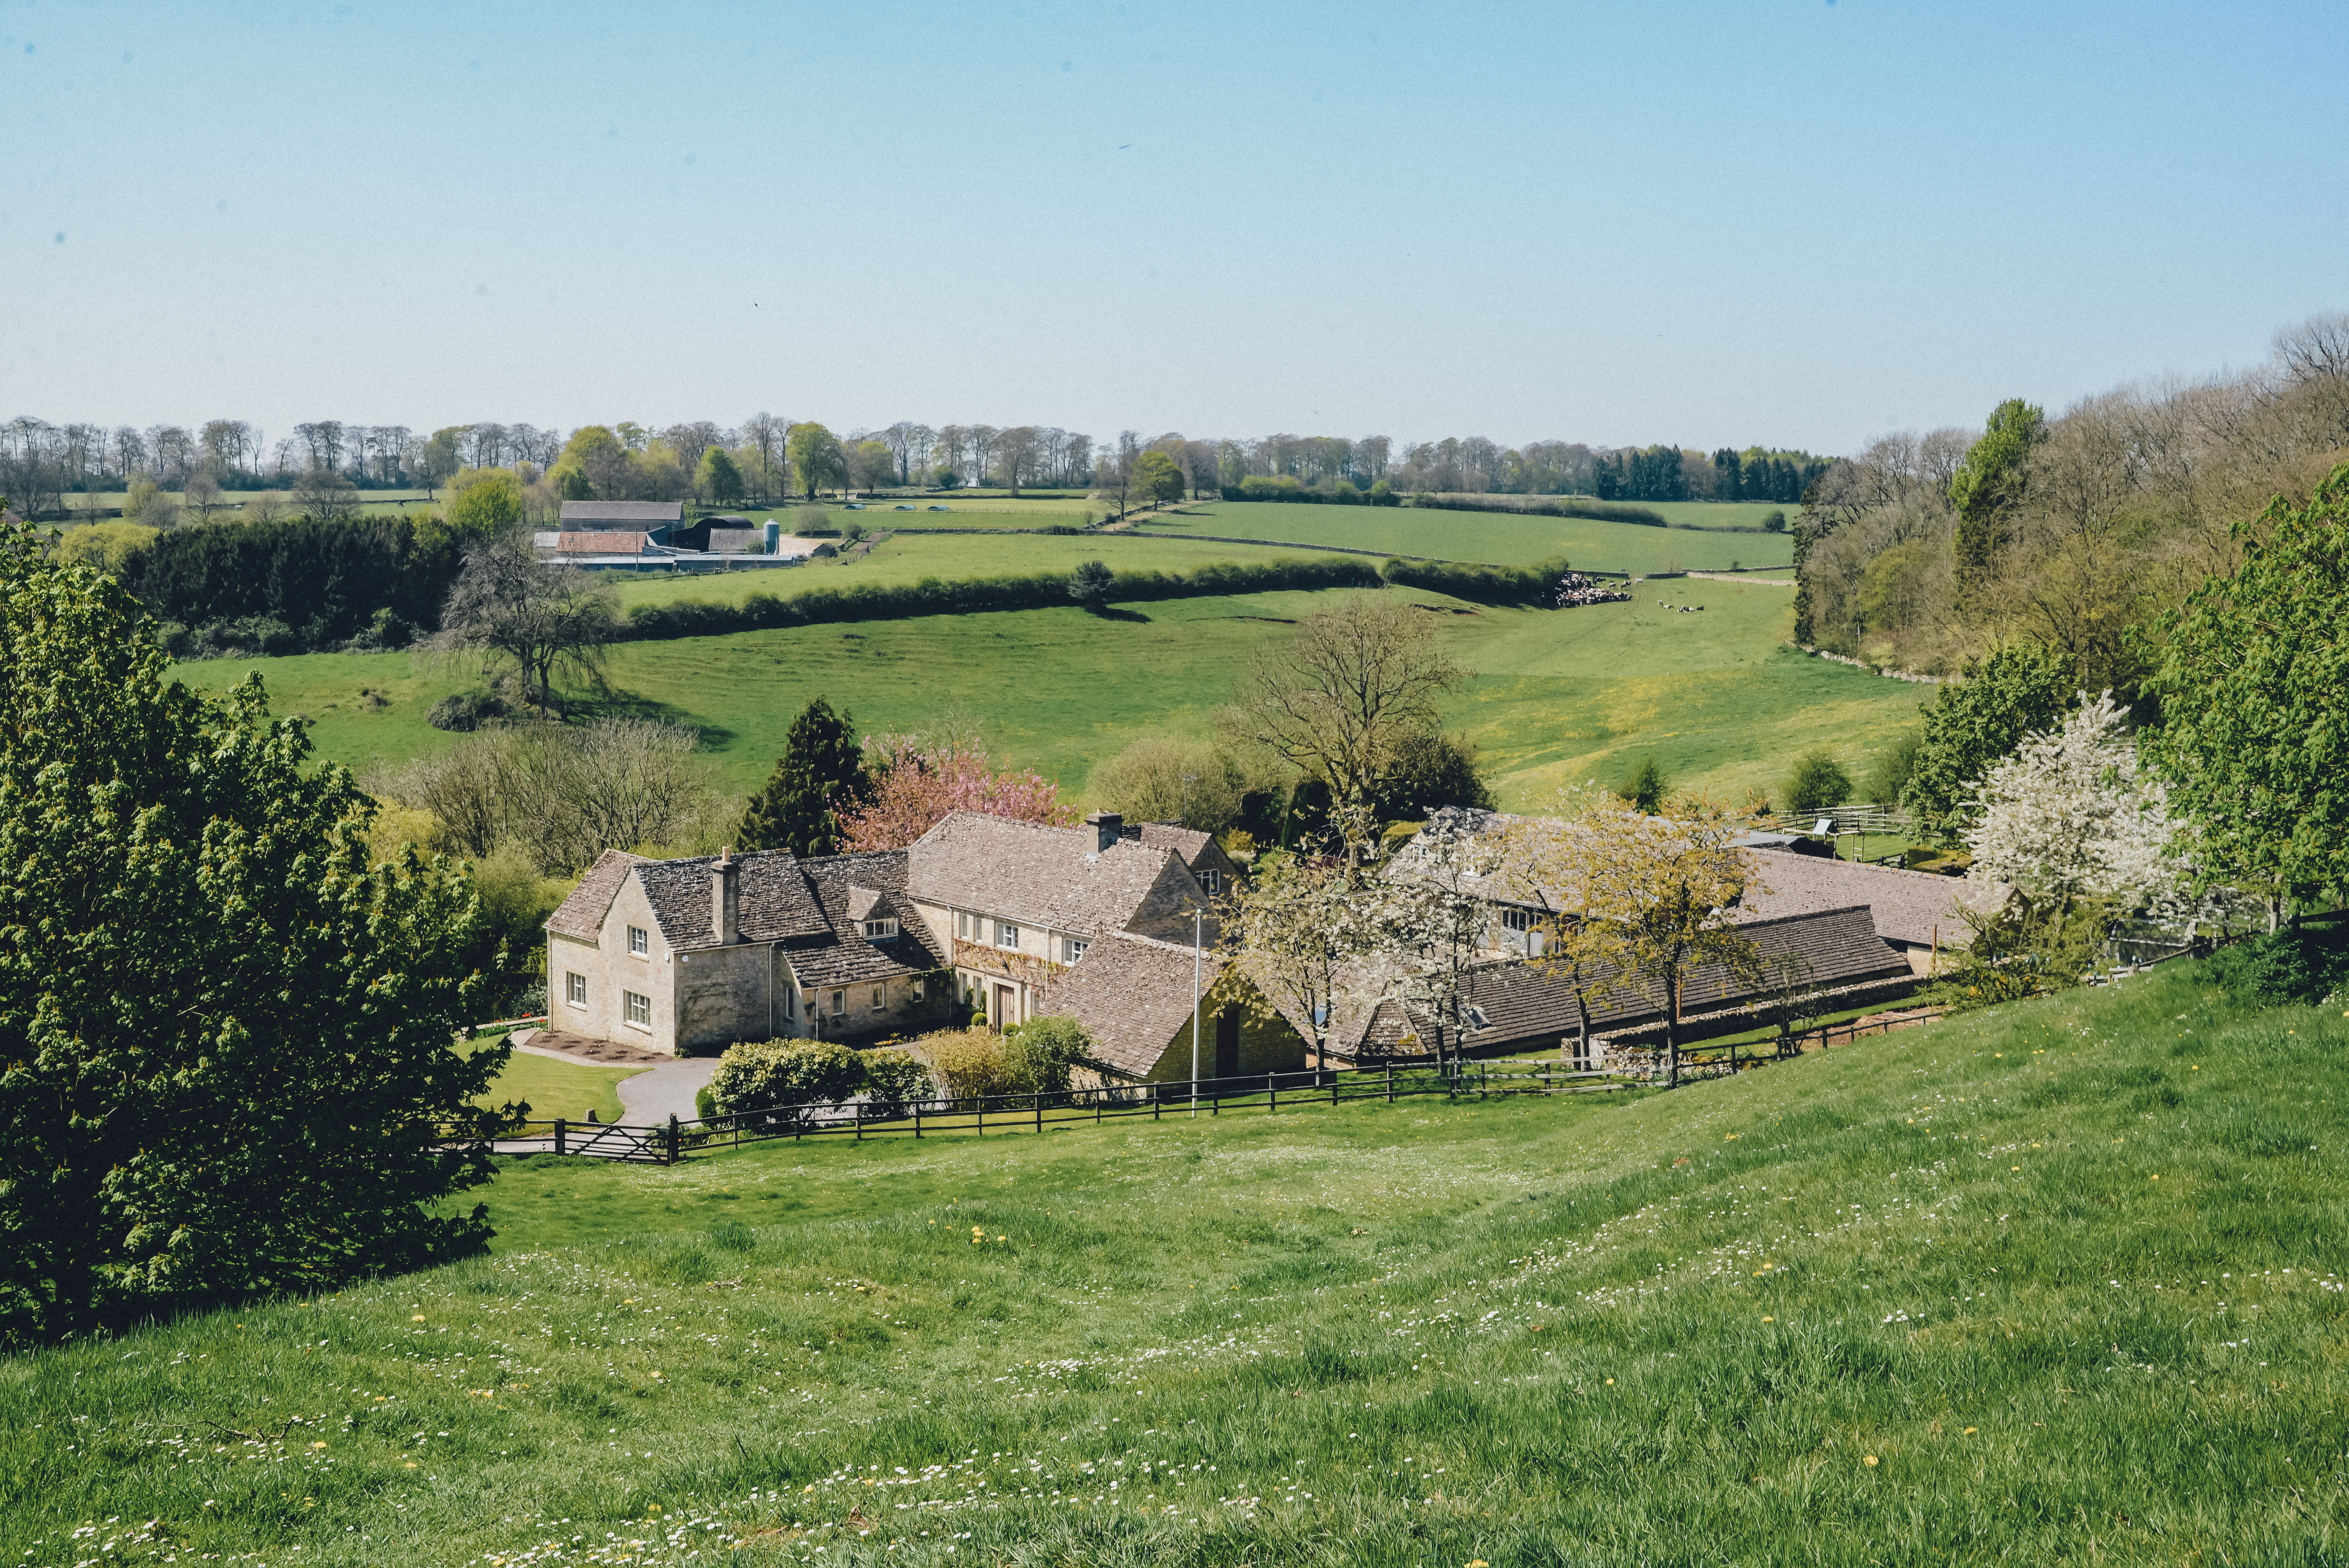 City Girls vs. Nature: a dose of olde English charm in the Cotswolds